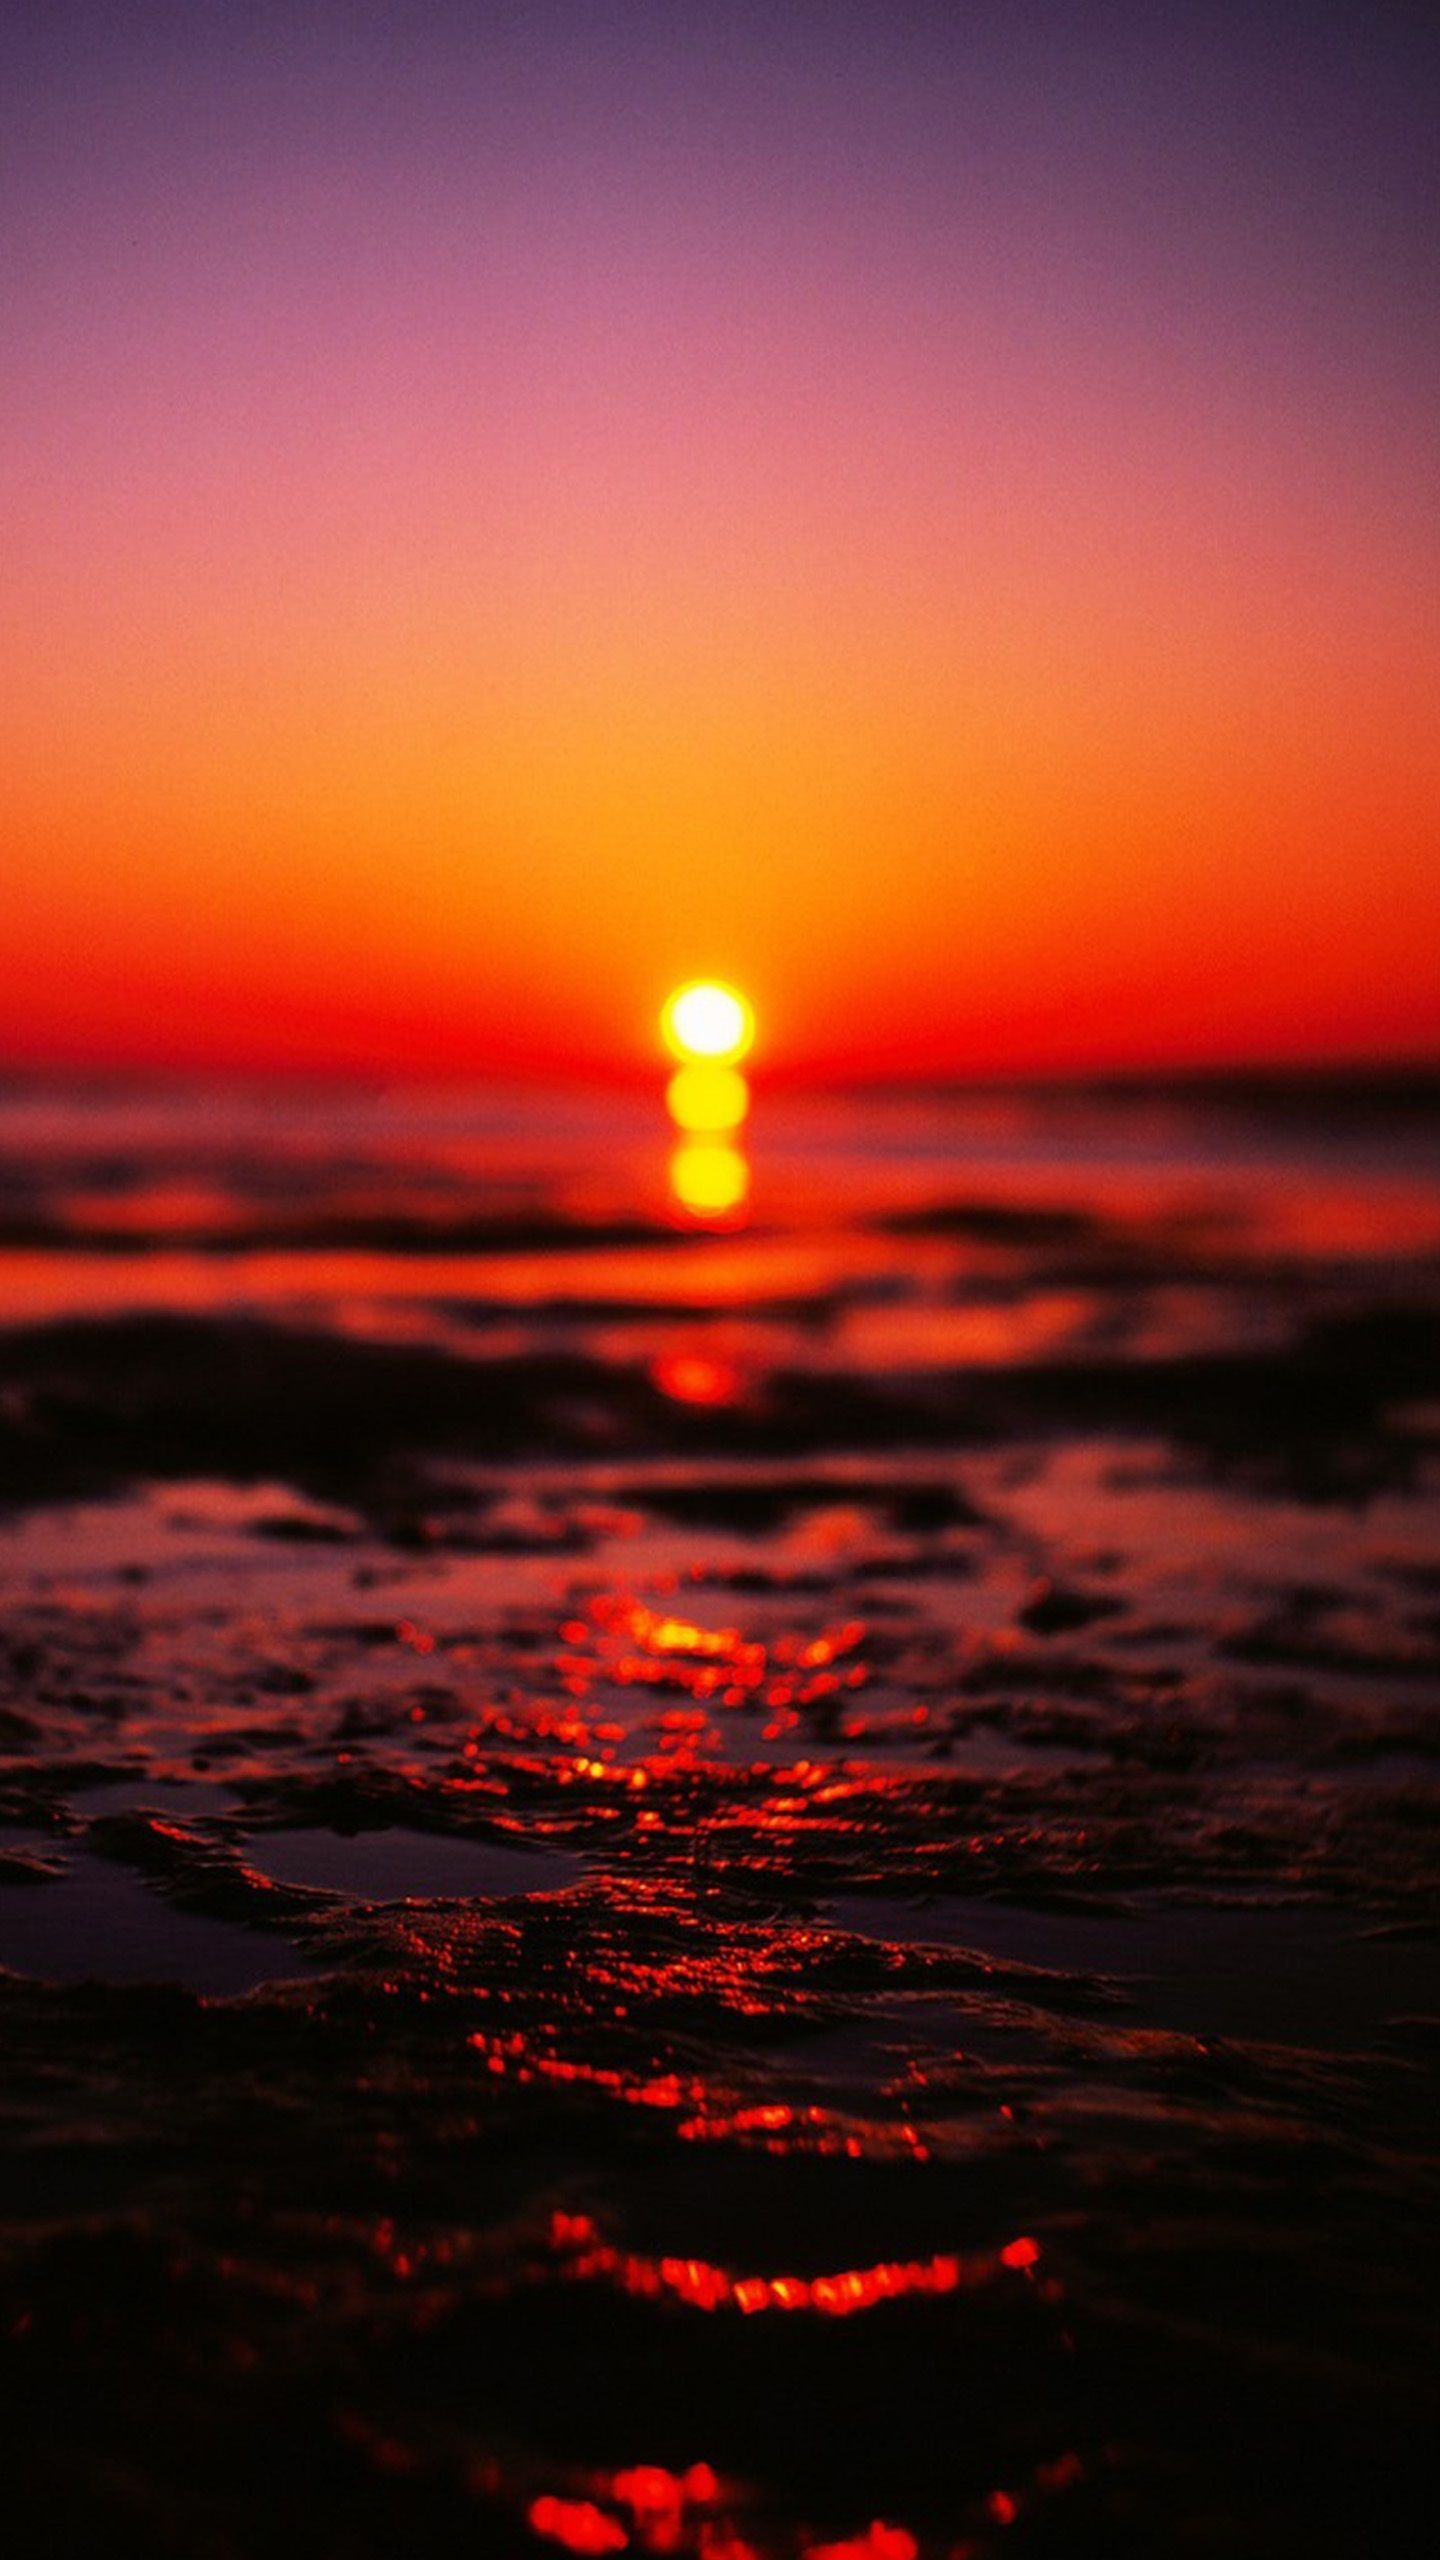 Blurry Sunset Wallpapers 36 Wallpapers Hd Wallpapers Sunset Iphone Wallpaper Hd Nature Wallpapers Beautiful Nature Wallpaper